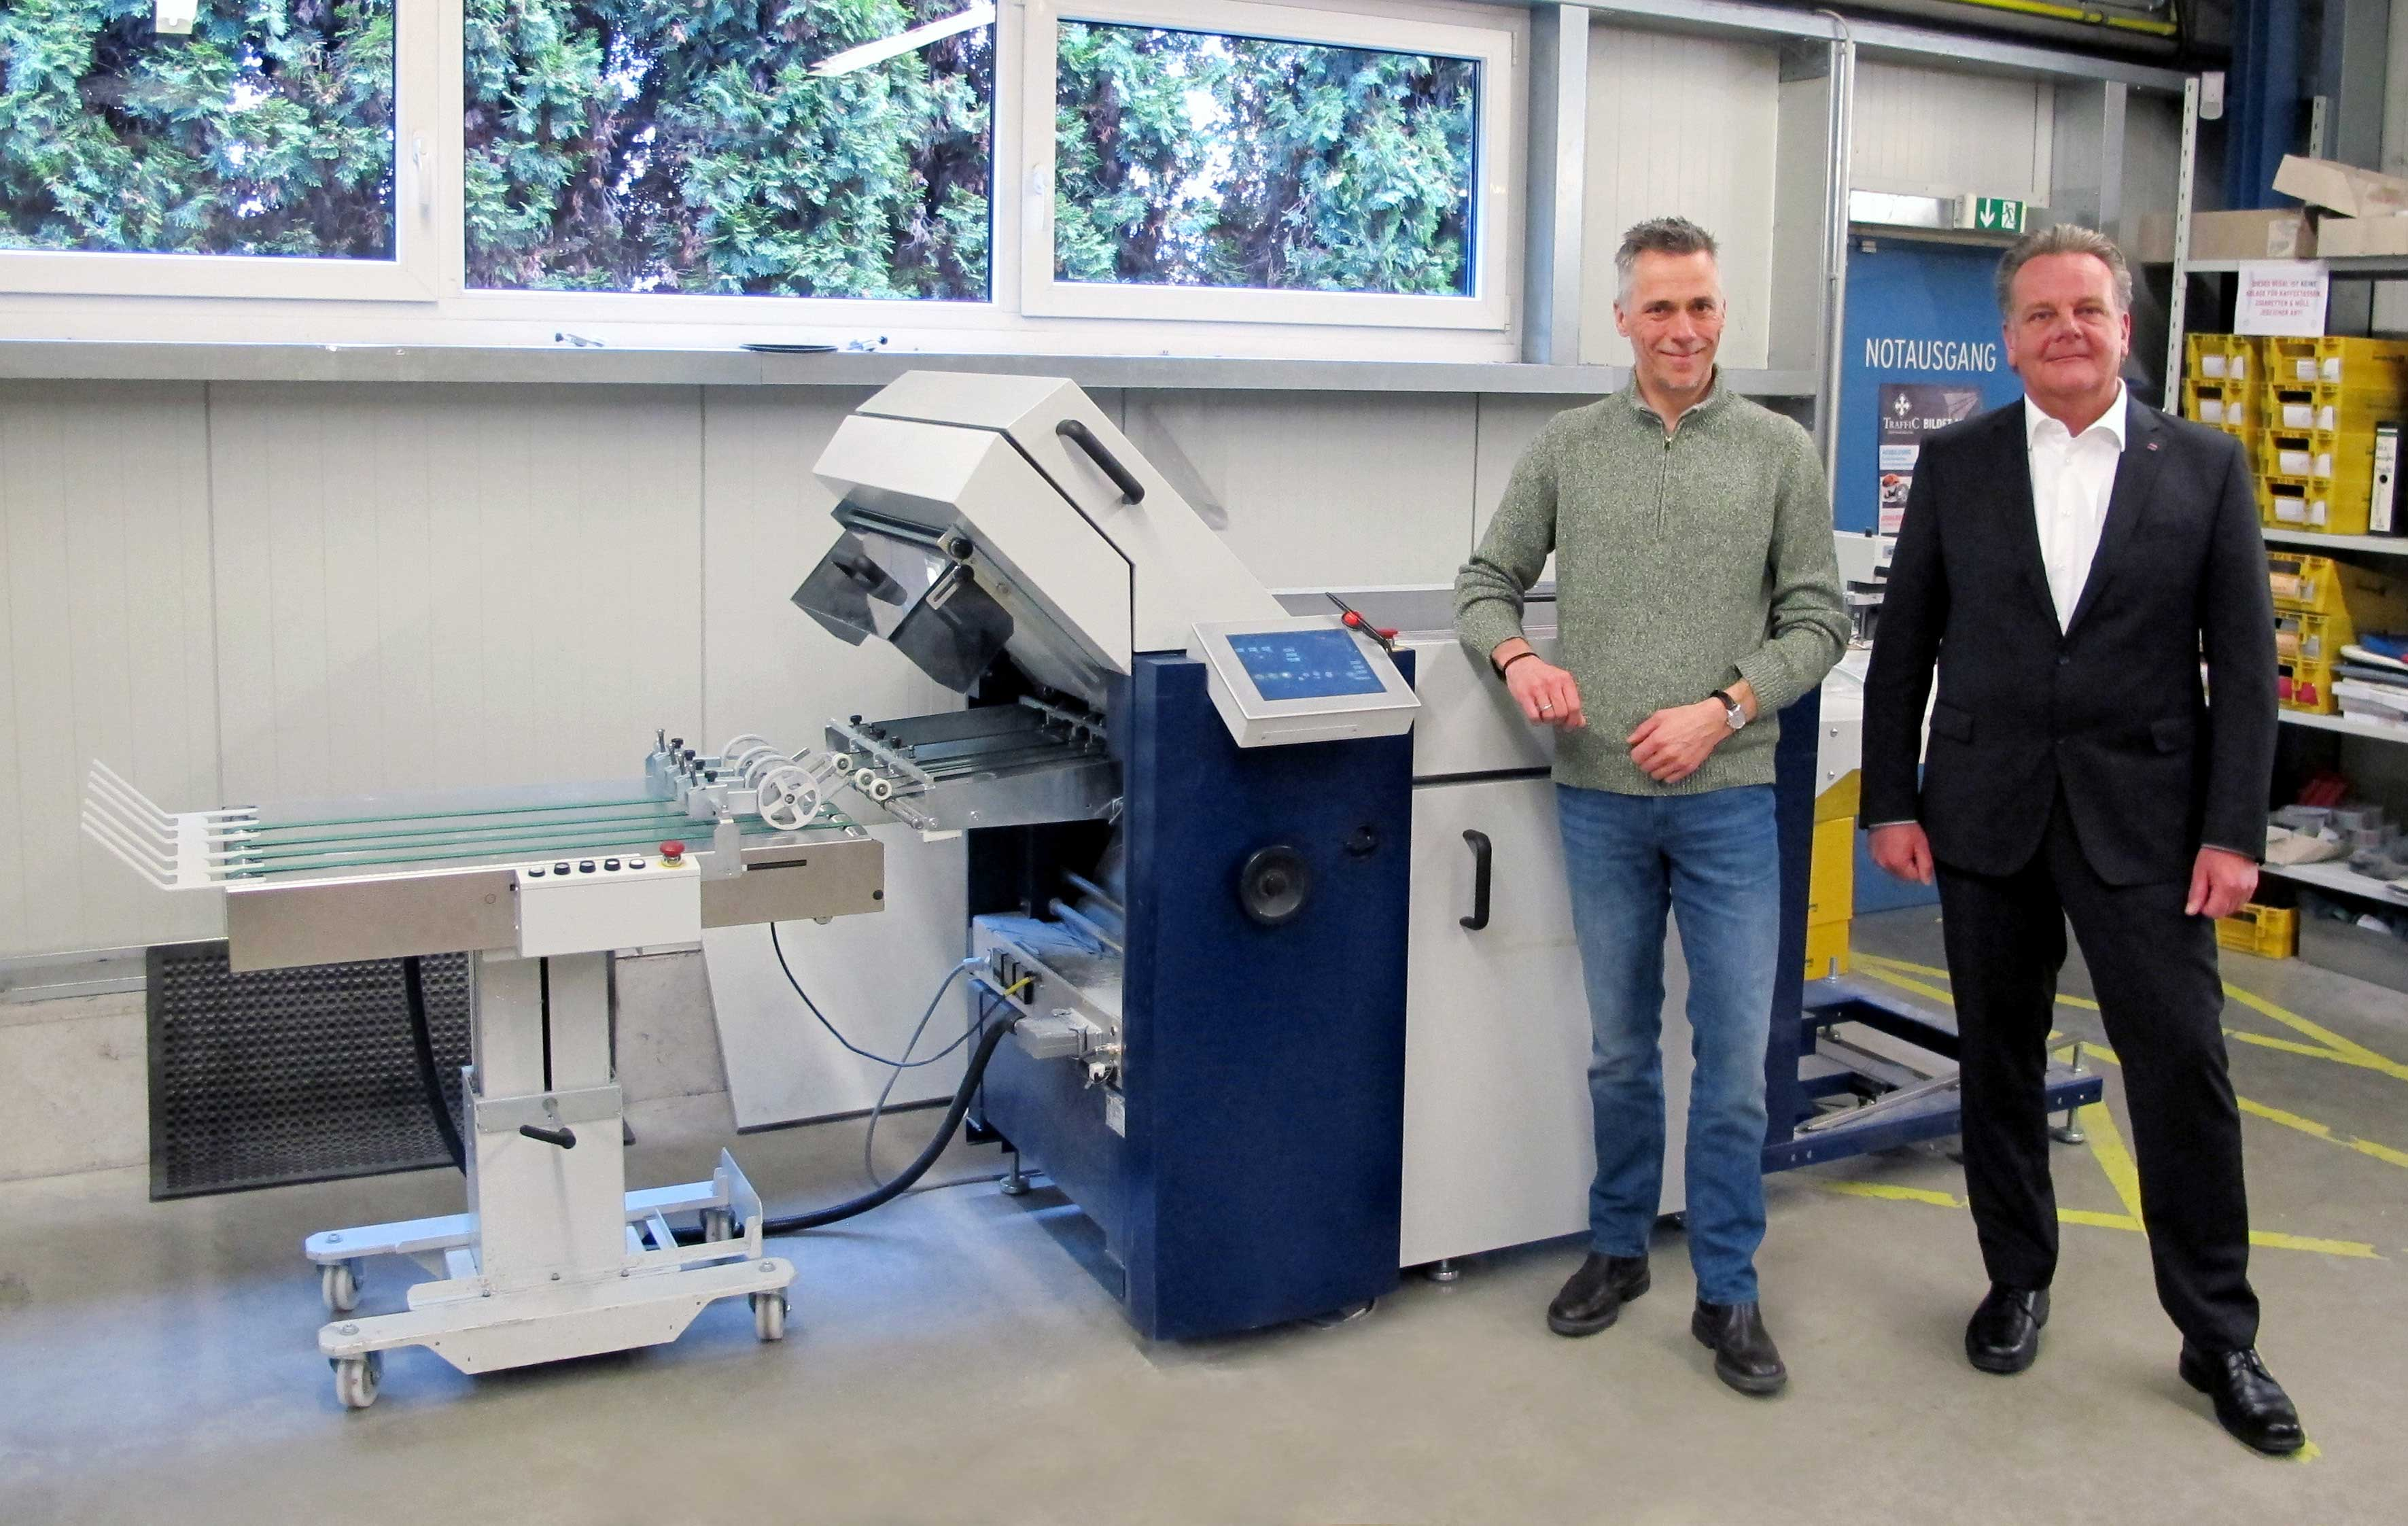 Welcome to MB Bäuerle - producer and seller of automatic folding ...